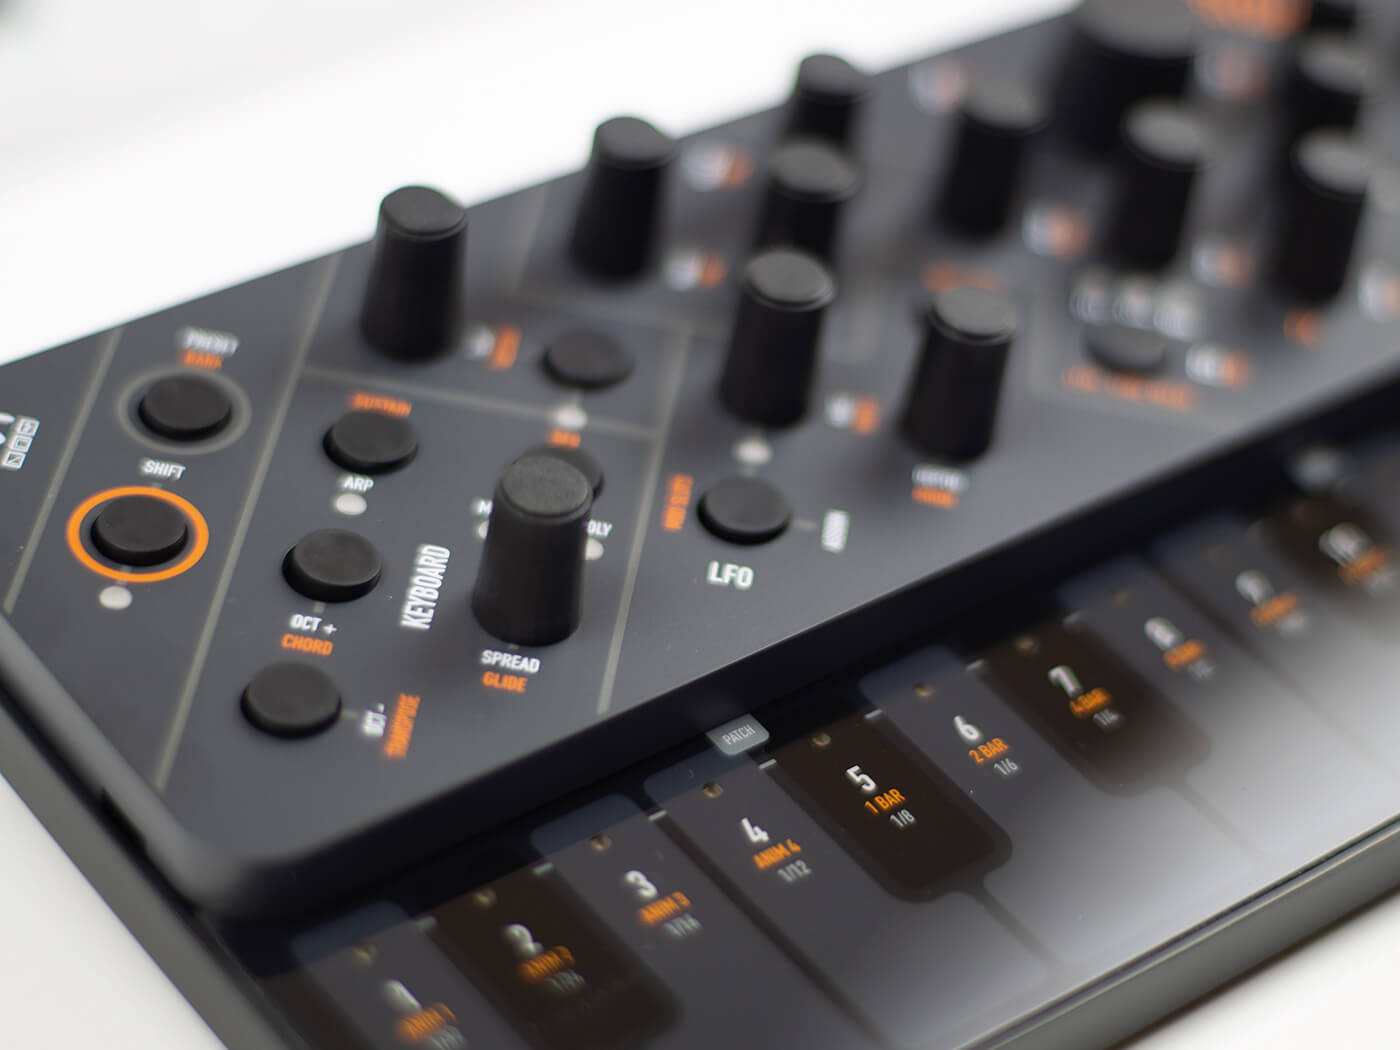 Skulpt gets MPE compatibility in 2.0 firmware update | MusicTech